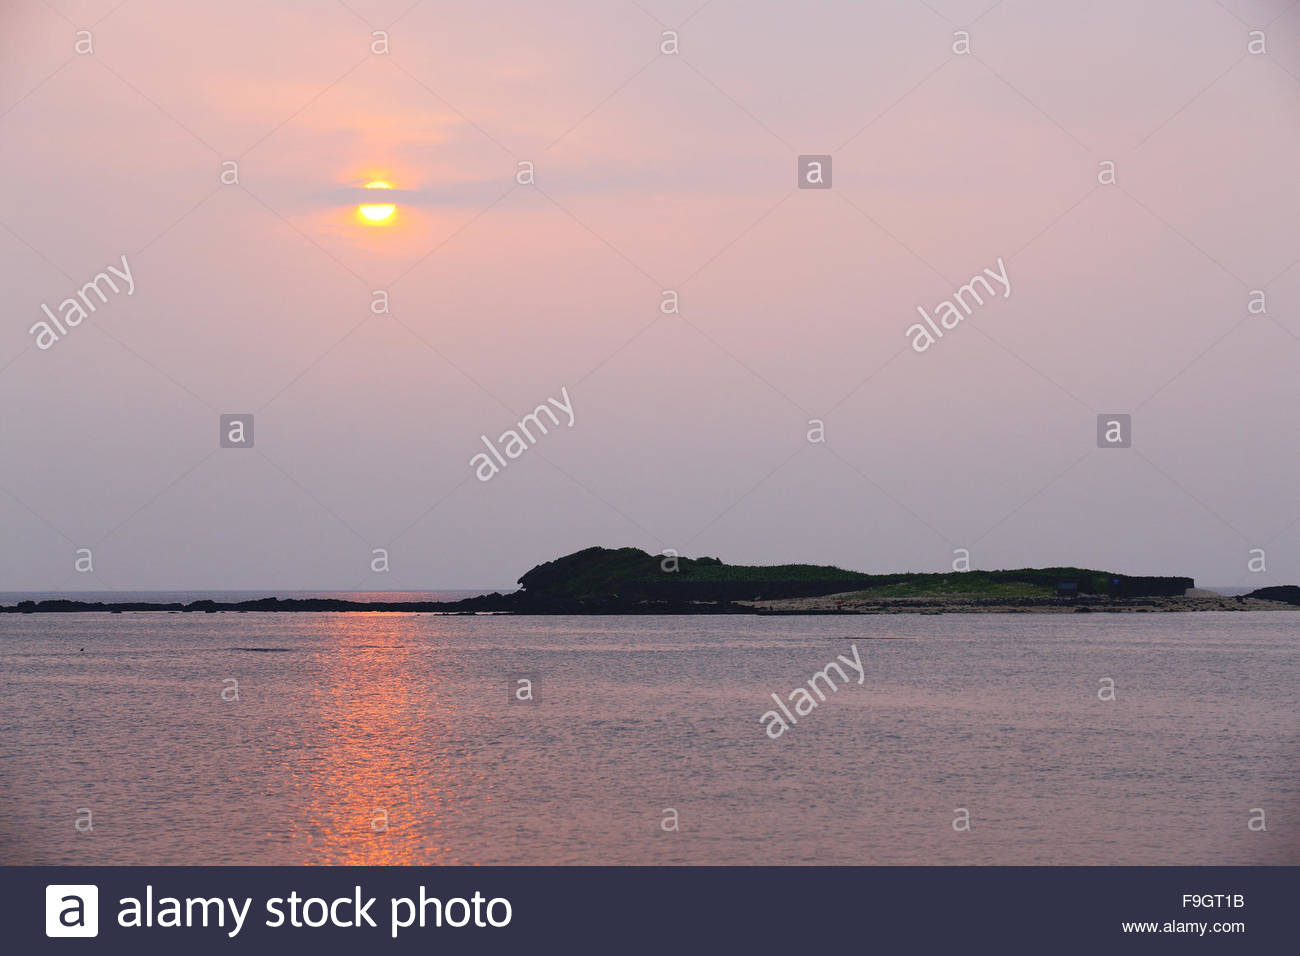 Tokkiseom Island by the evening, Jeju, South Korea - Stock Image